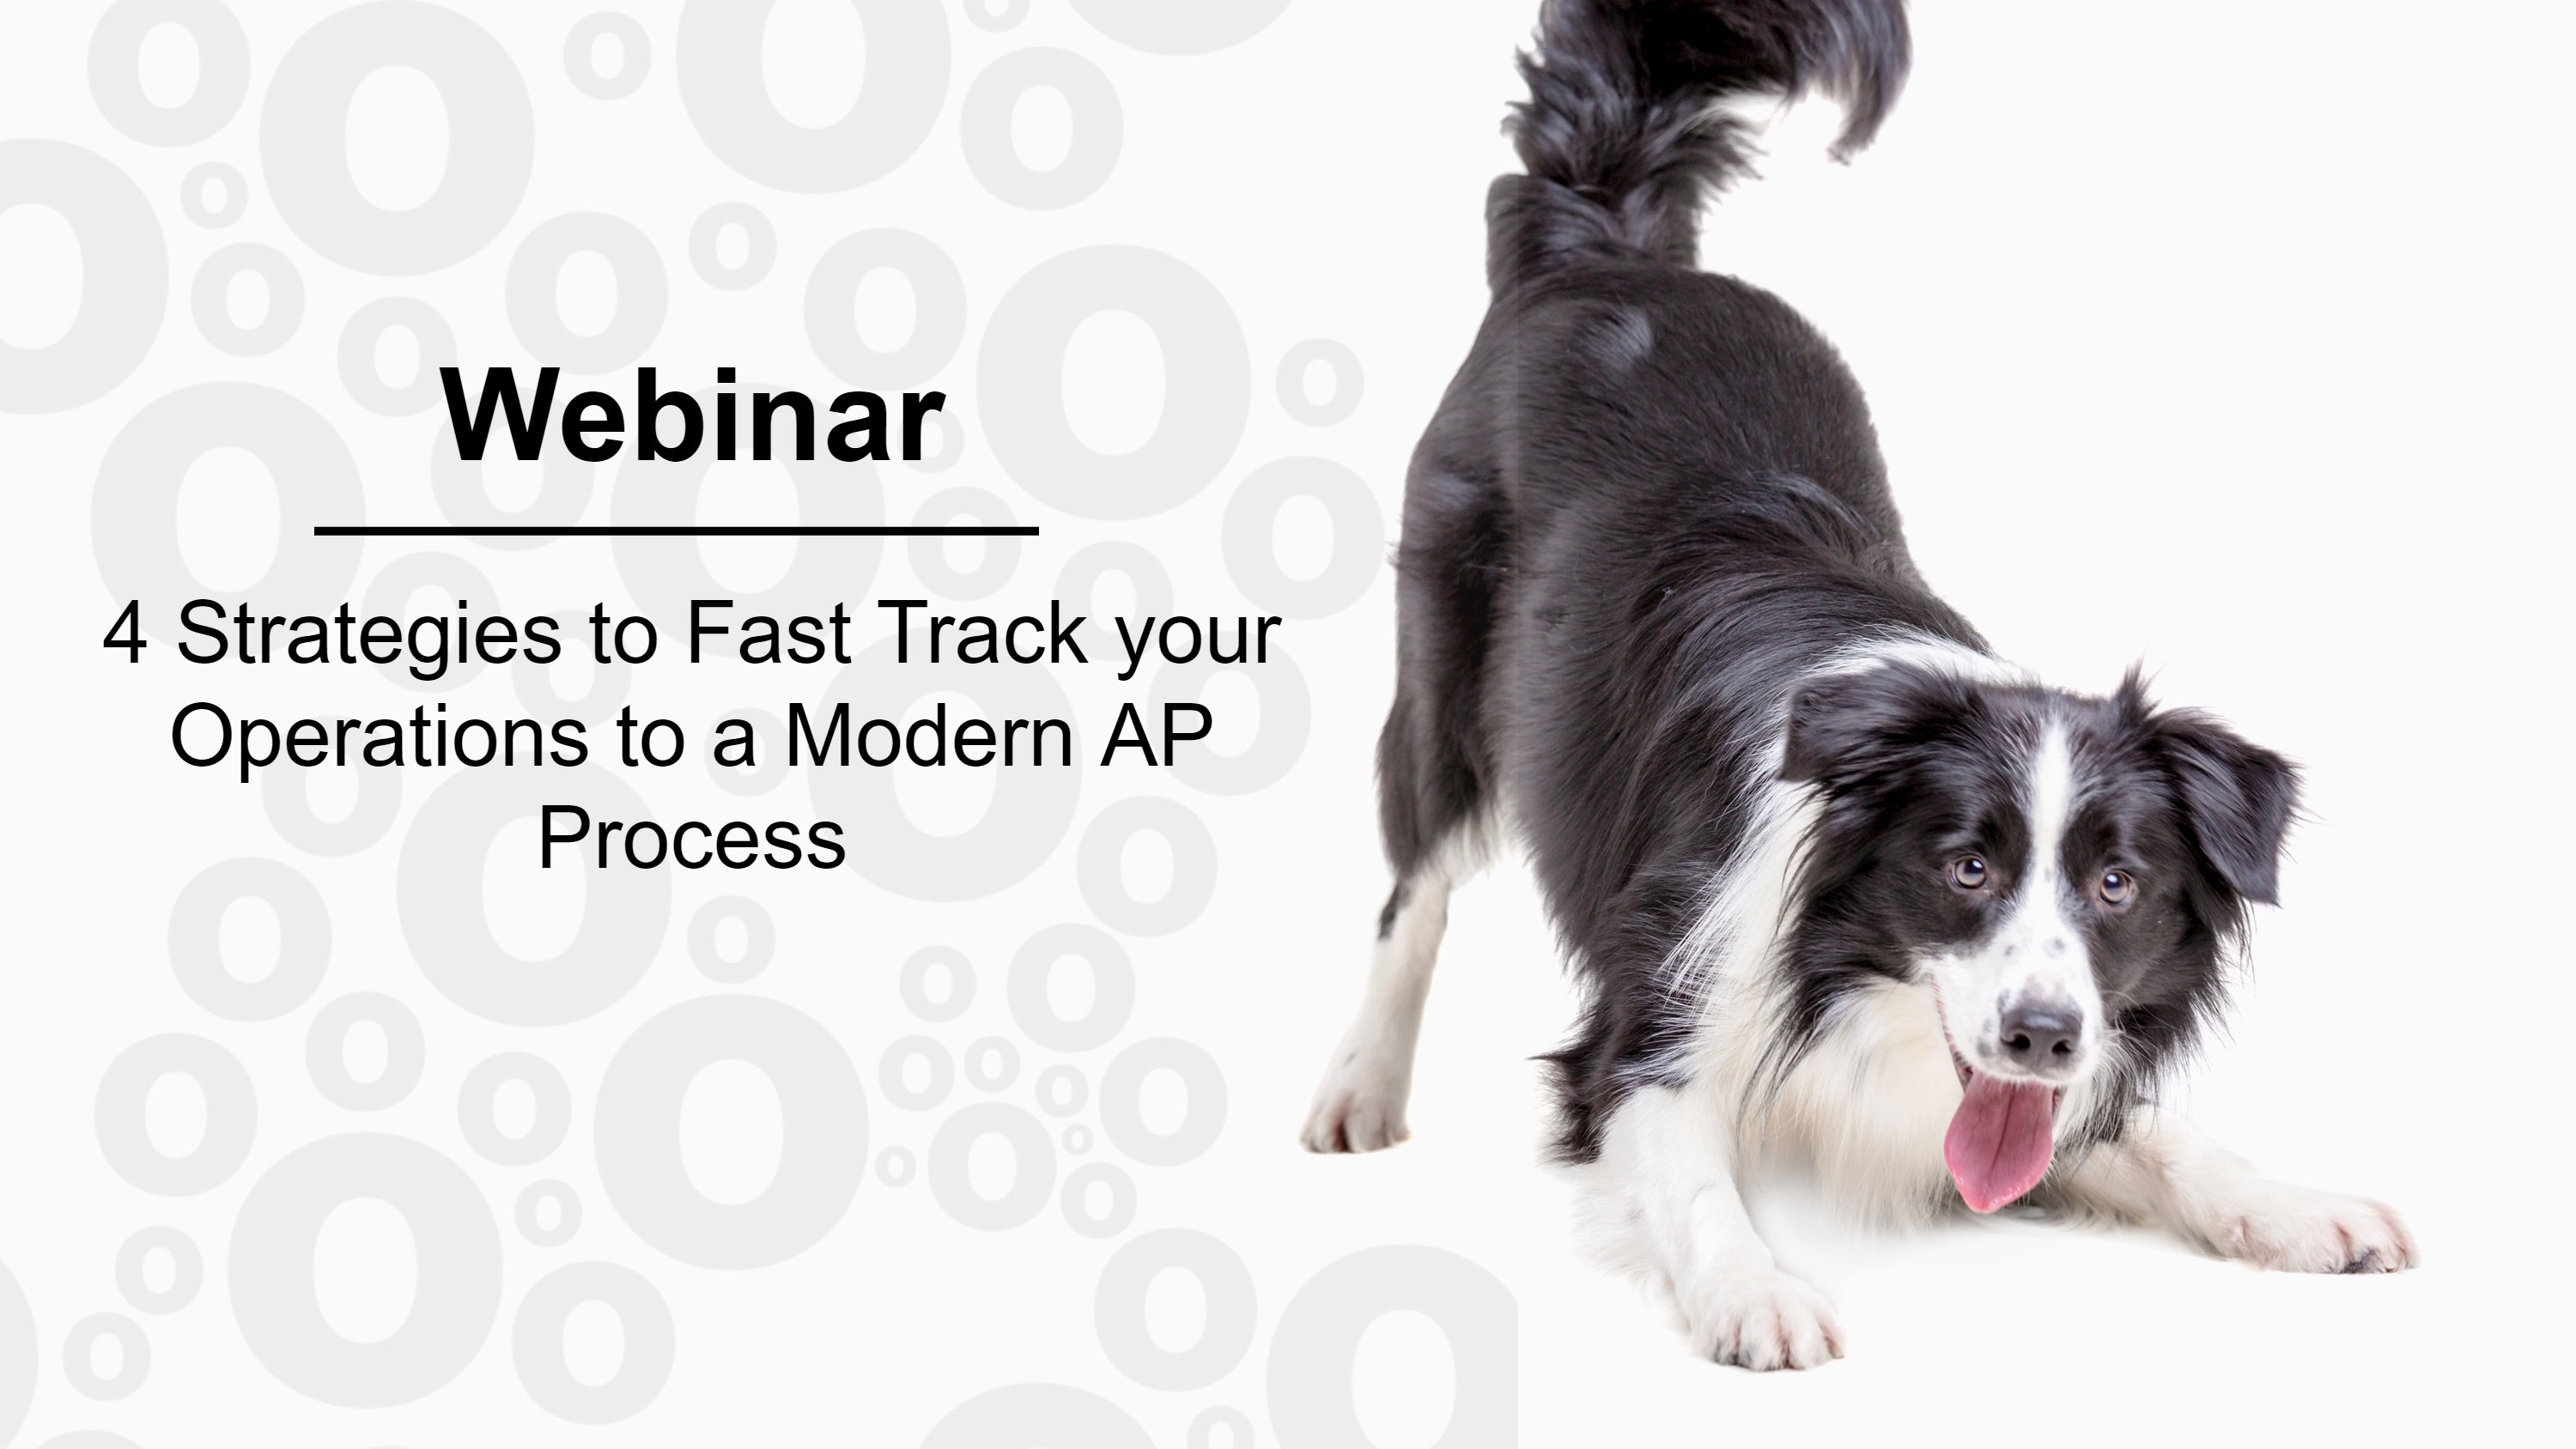 4 Strategies to Fast Track your Operations to a Modern AP Process